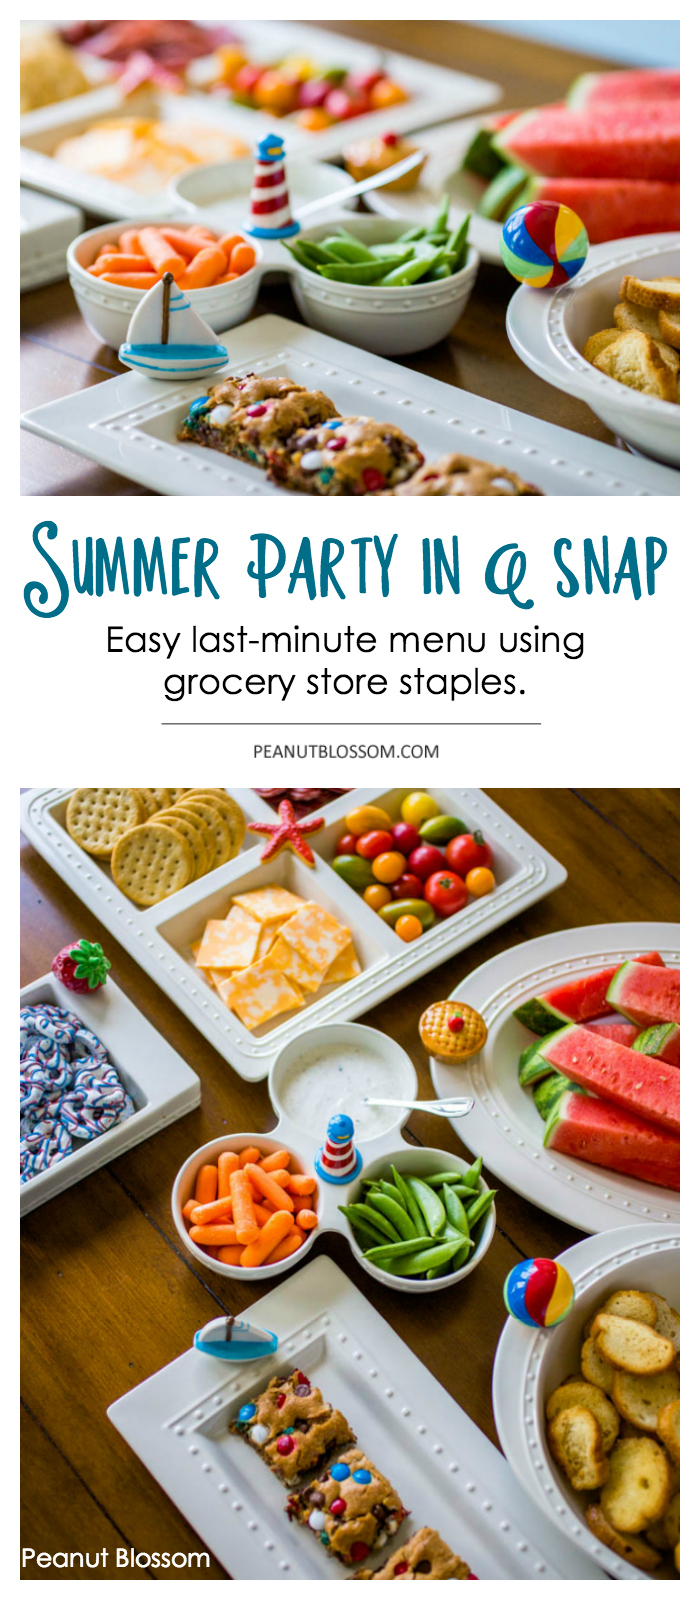 Quick and easy summer party recipes that you can pull together in just minutes using grocery store staples.